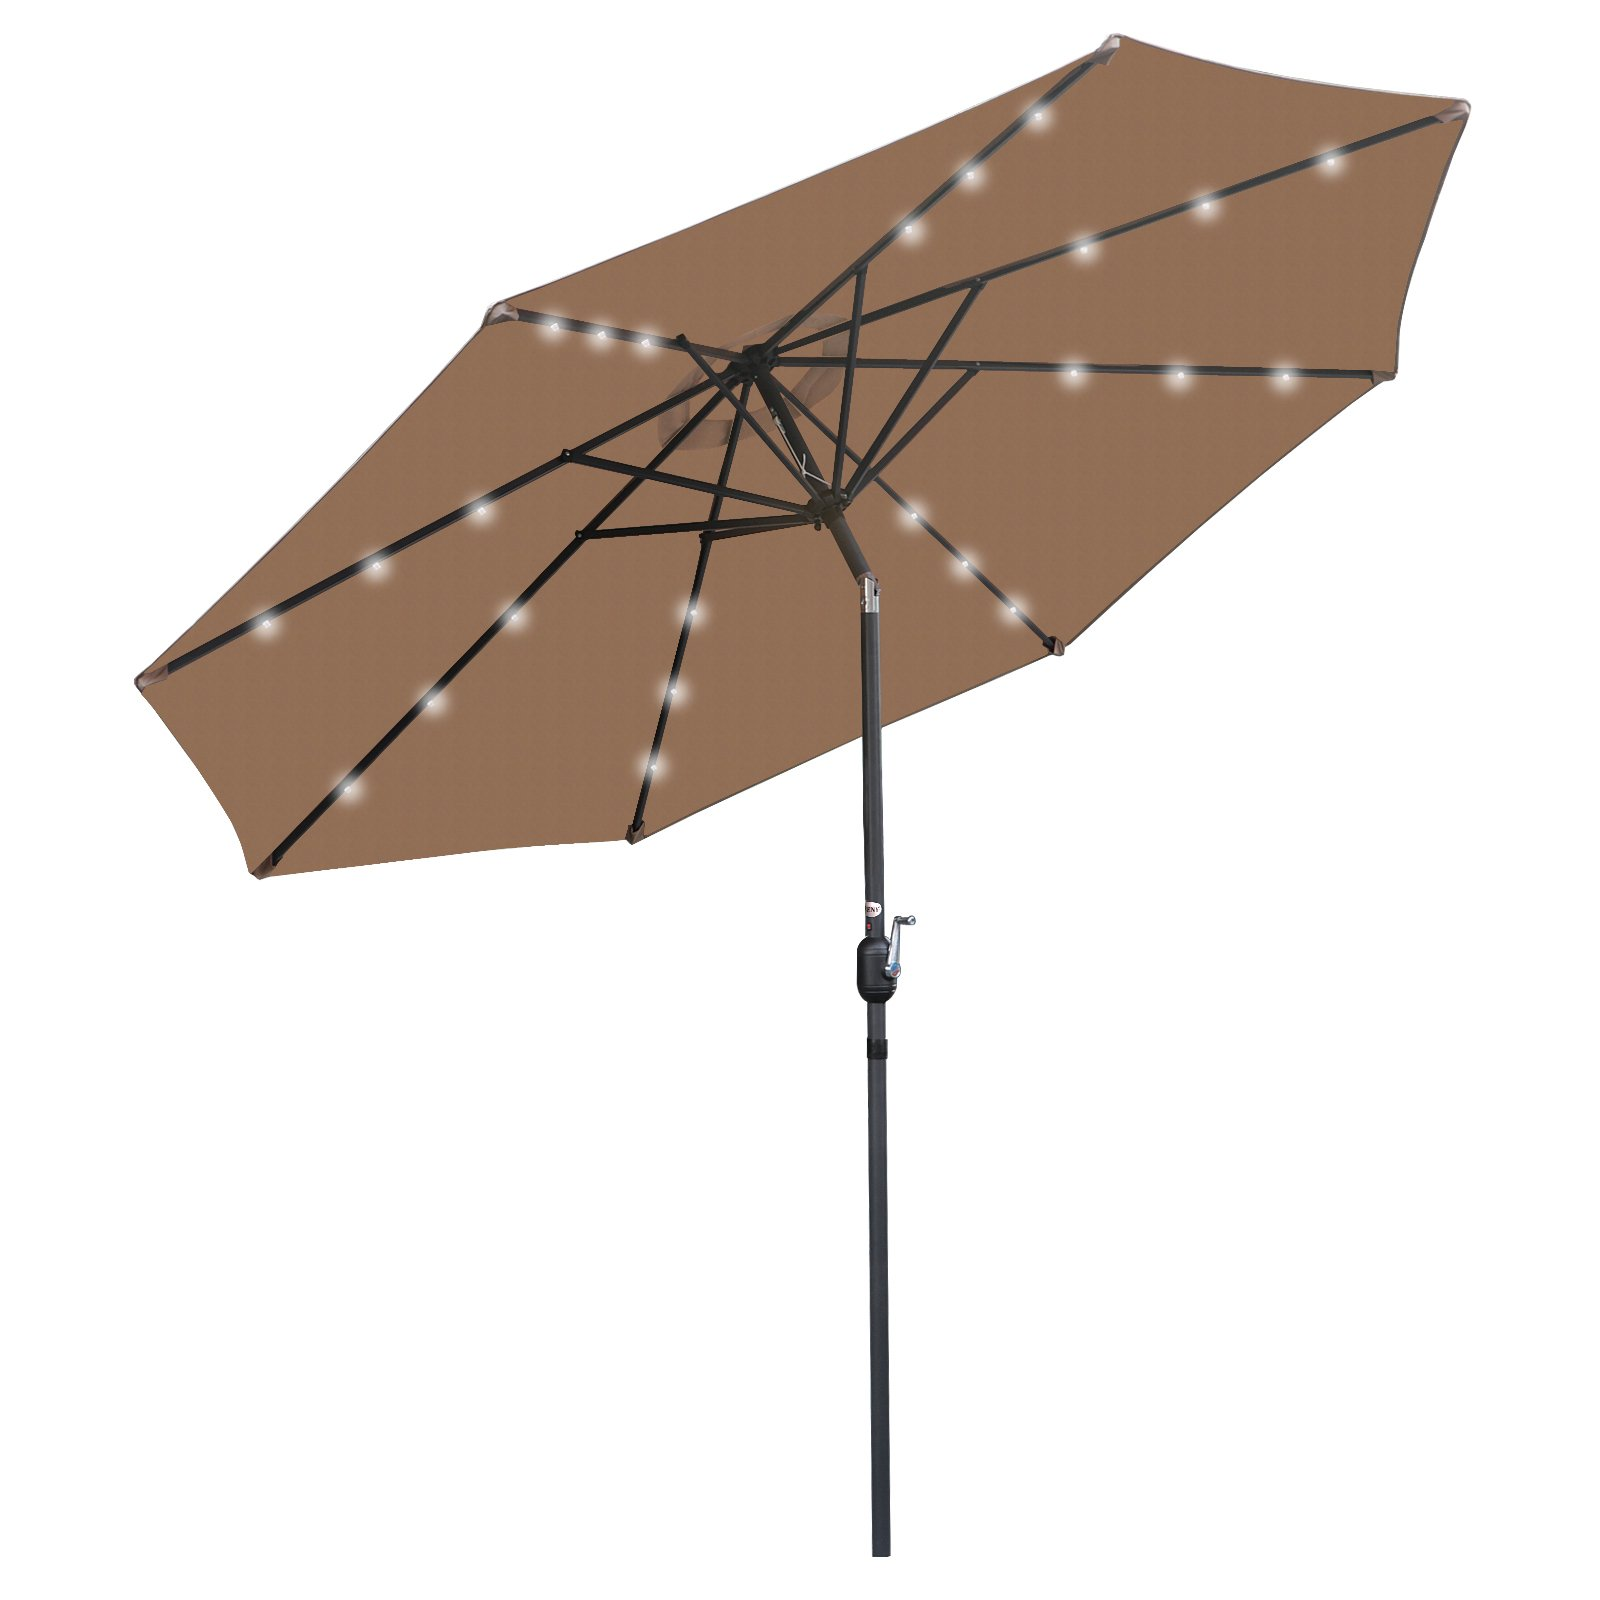 ZENY 10Ft LED Lighted Patio Market Umbrella Solar Powered Table Umbrella with Crank and Push Button Tilt for Garden Backyard Pool,Sunshade Canopy,8 Ribs